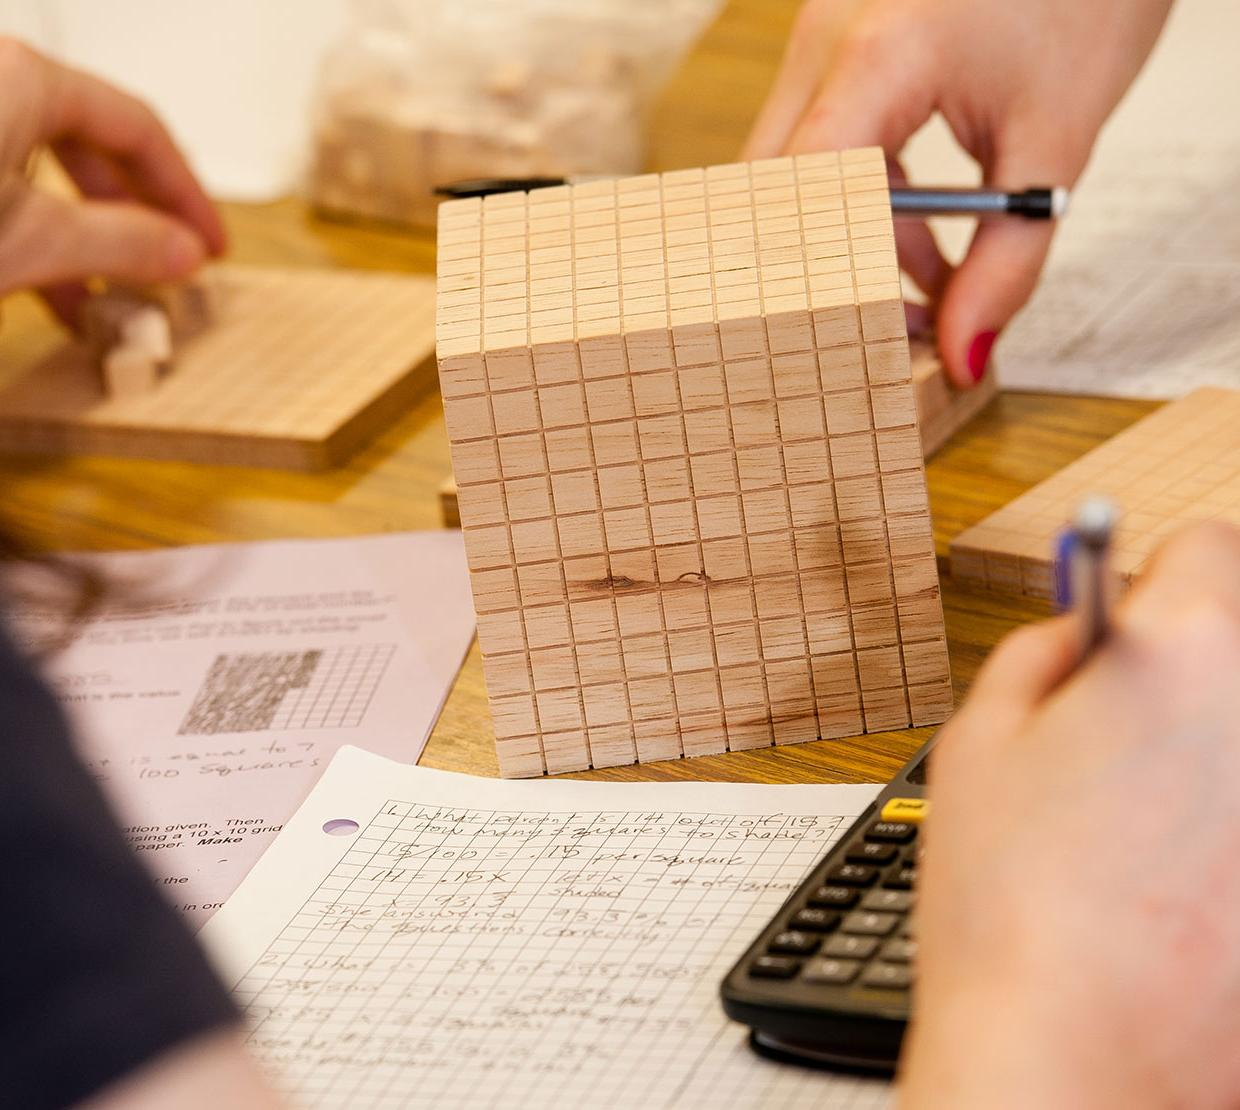 wooden cube on a table with math homework